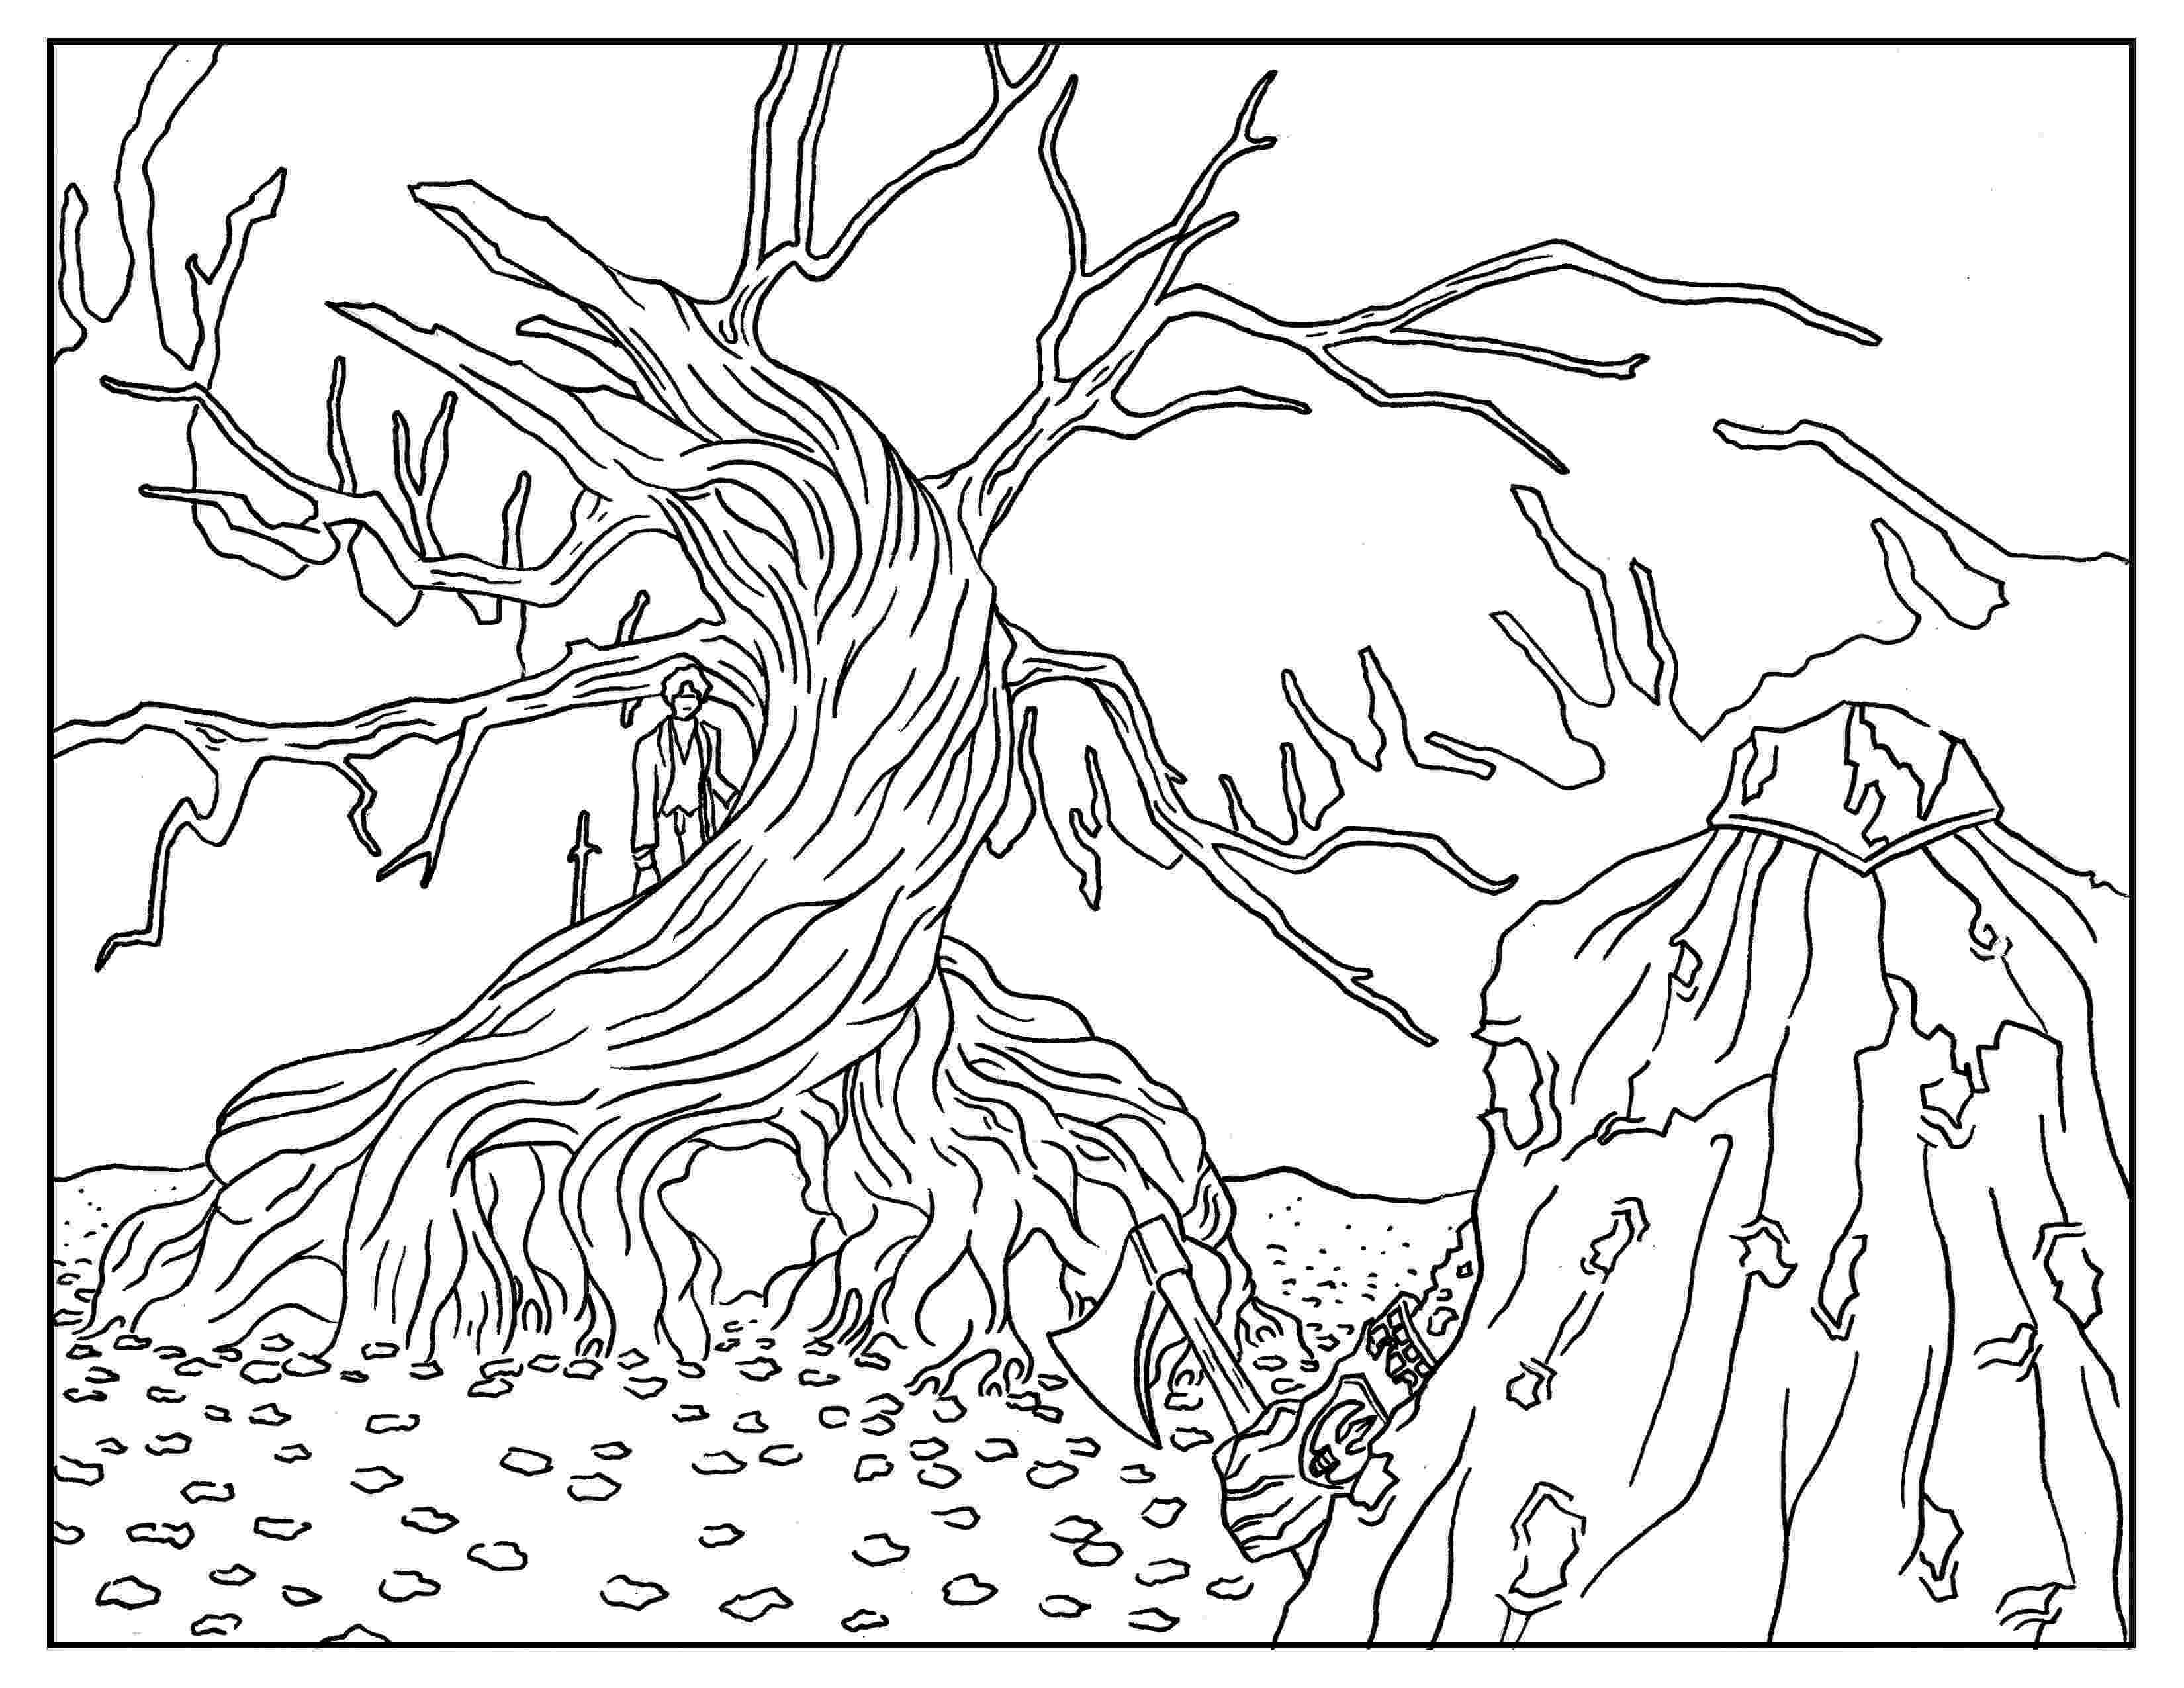 coloring book for adults where to 8 tim burton adult coloring book pages printables where to adults for book coloring